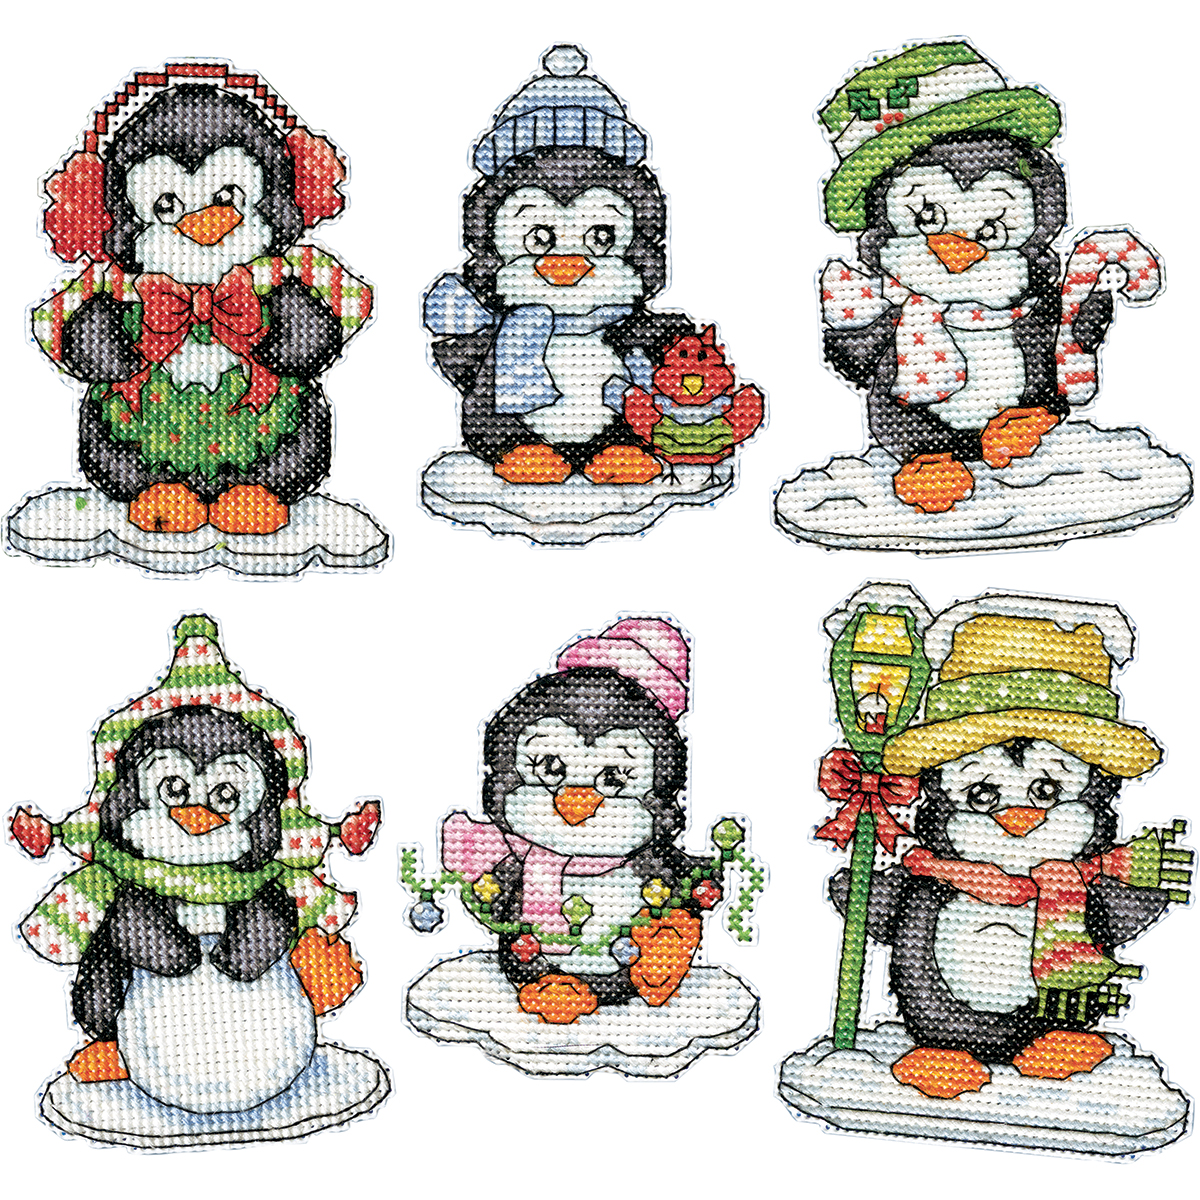 "Penguins On Ice Ornaments Counted Cross Stitch Kit, 3.5"", 14-Count, Set of 6"